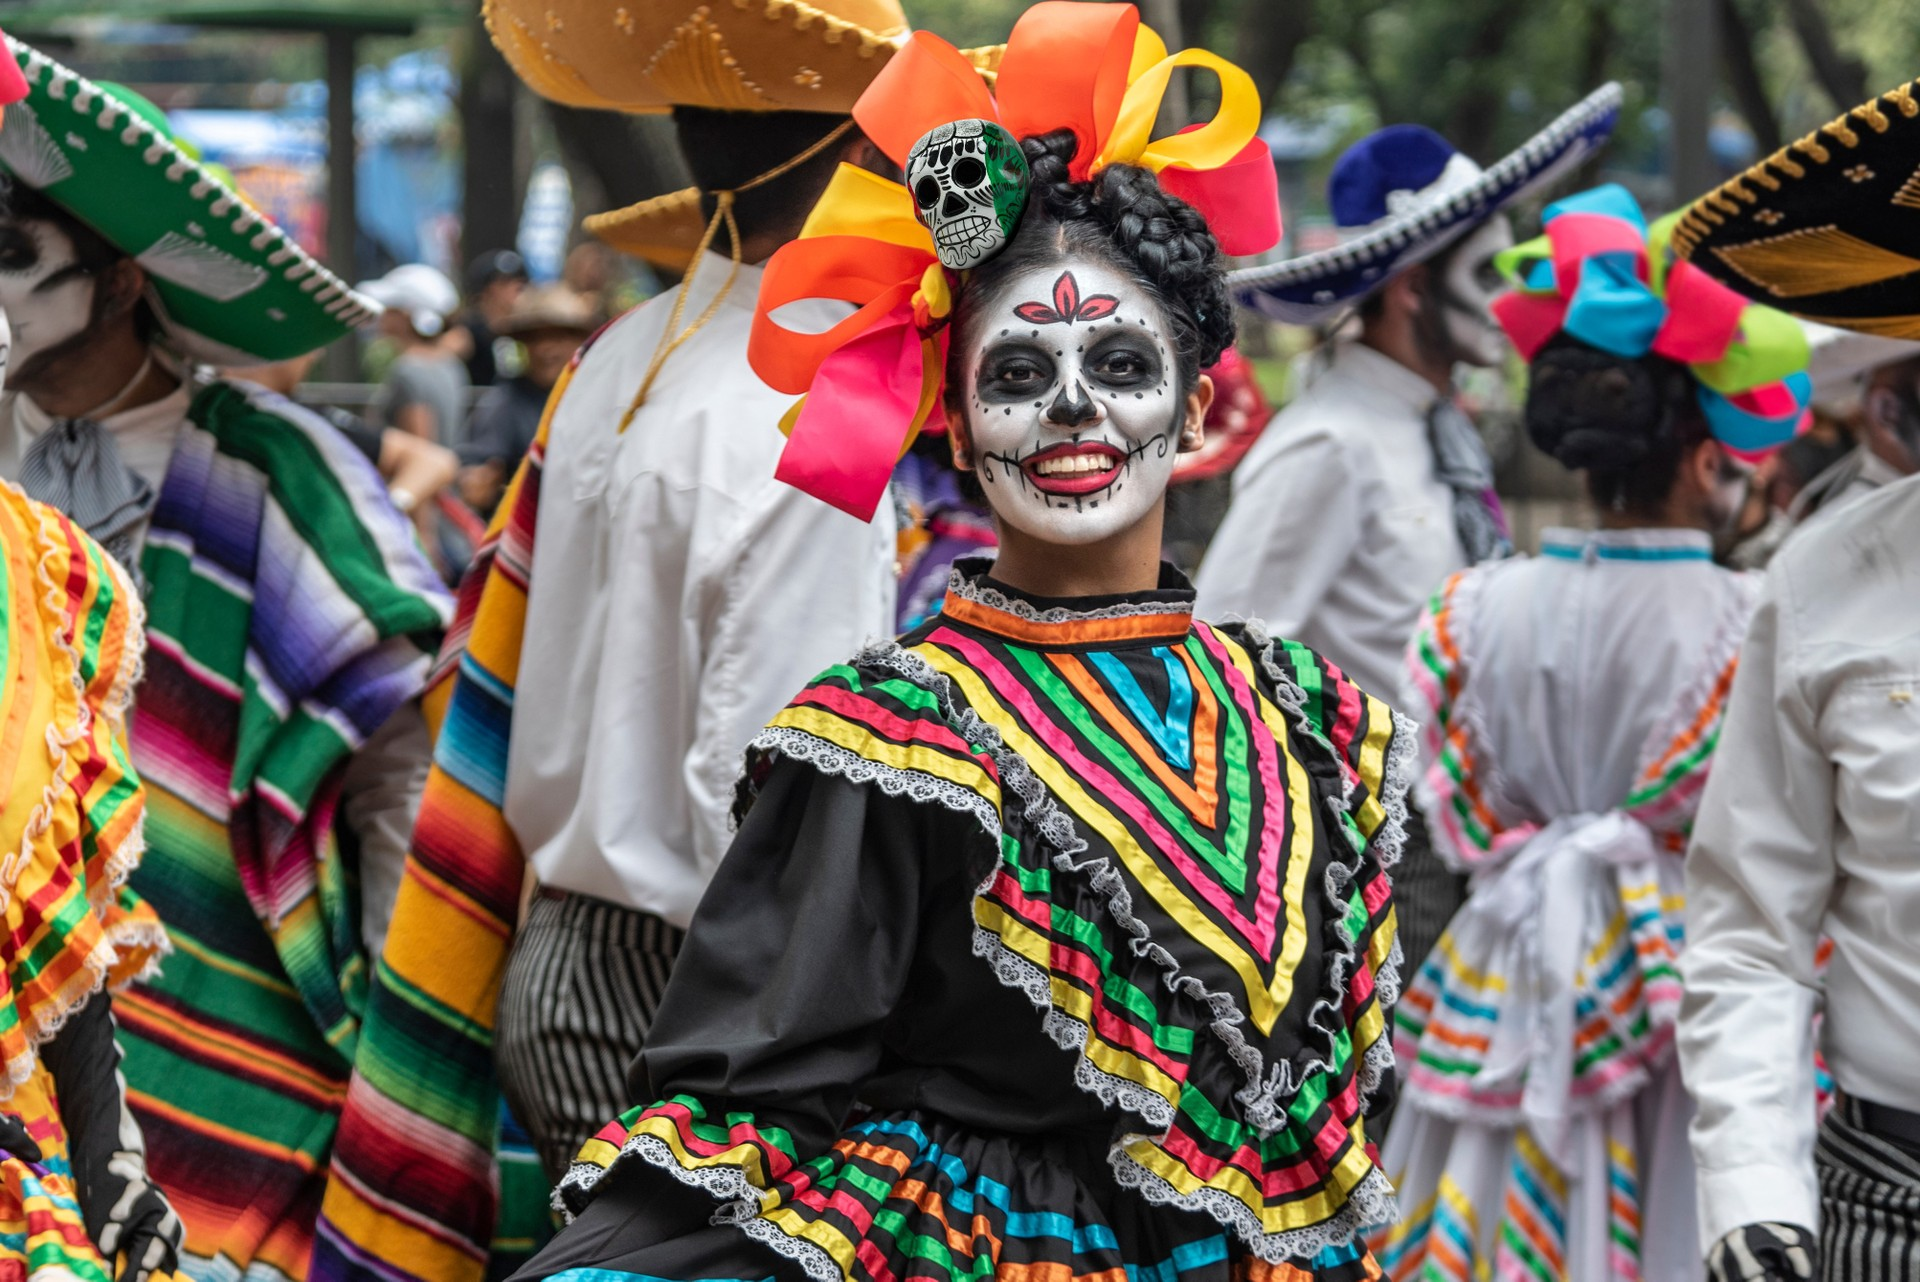 How to experience Mexico's famous Day of the Dead: Woman enjoying the festivities